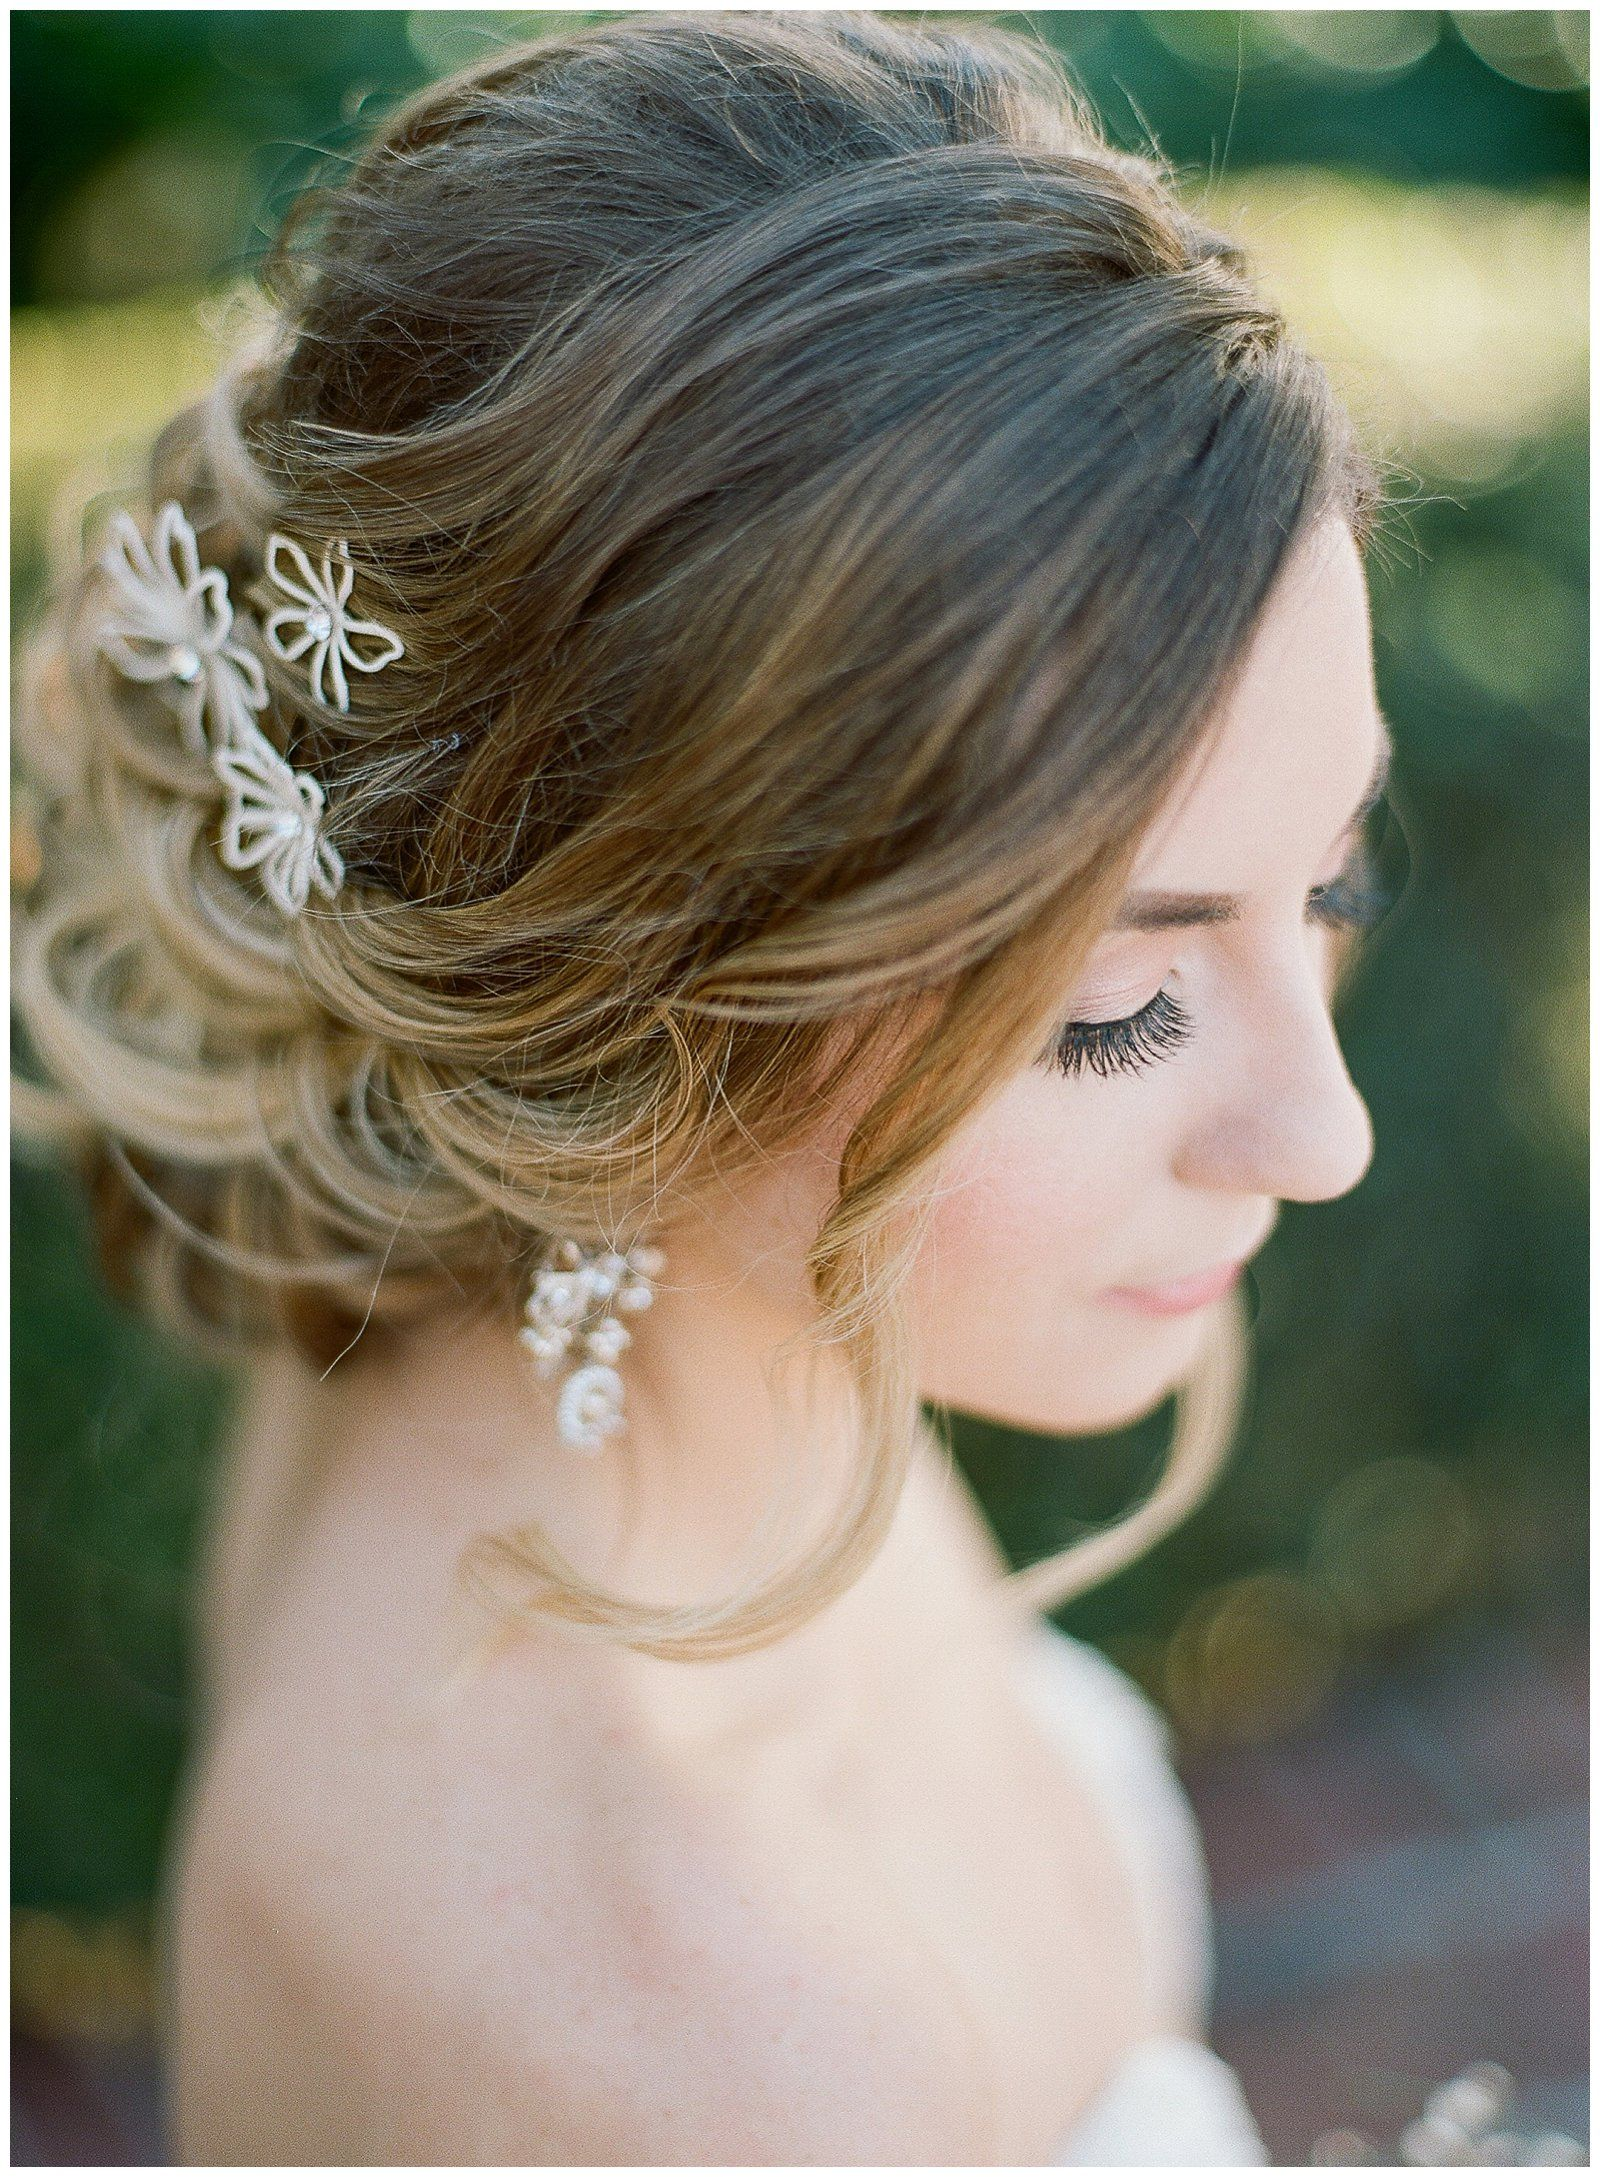 Cypress Grove Estate House Wedding Inspiration with Emerald and Gold